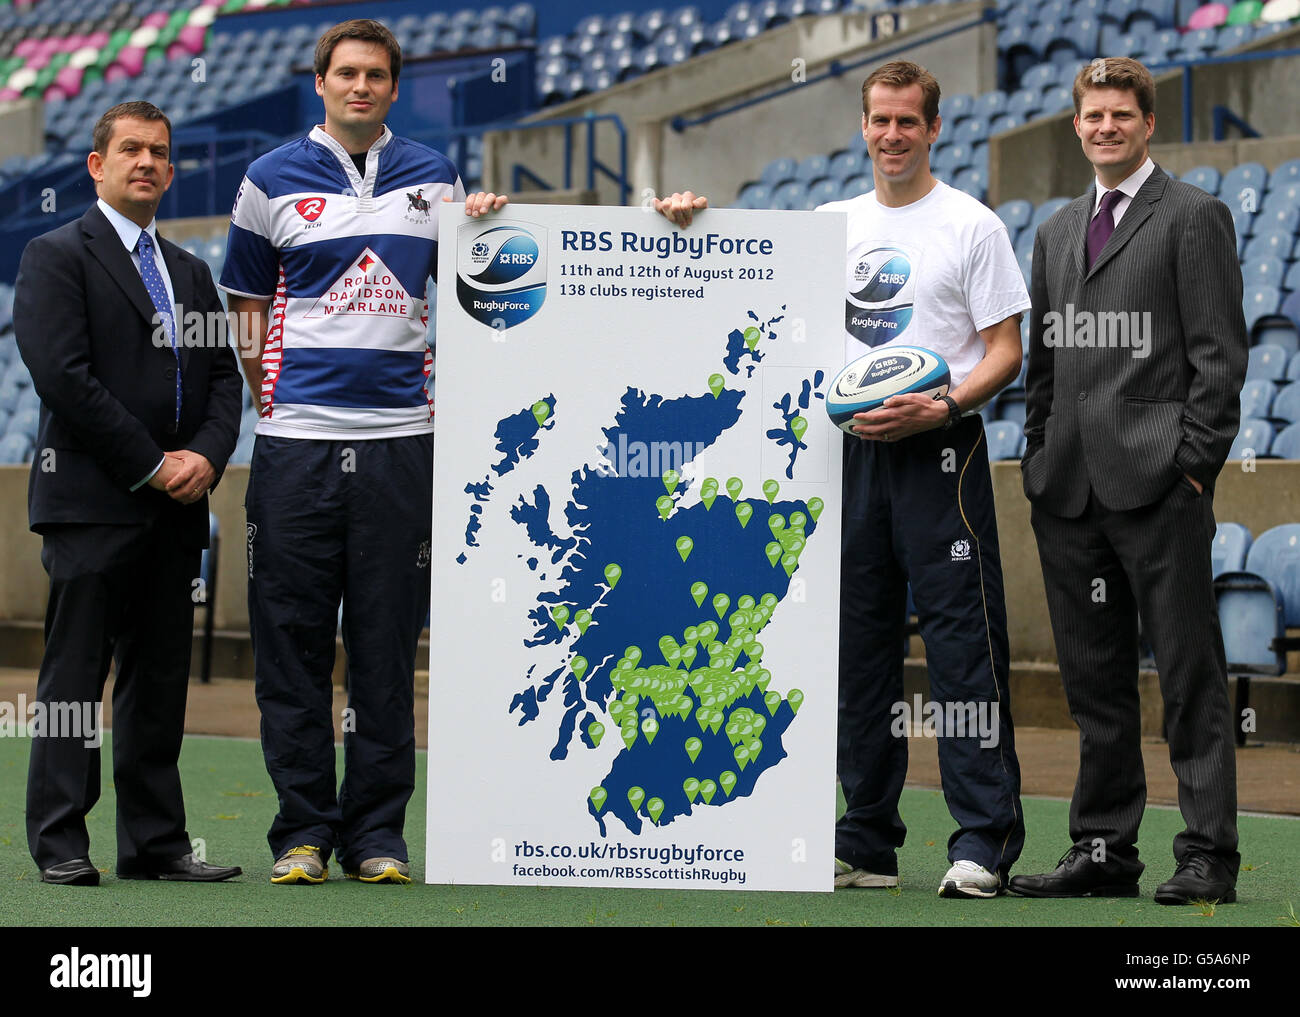 Rugby Union - Launch of RBS New RugbyForce Initiative - Murrayfield Stock Photo